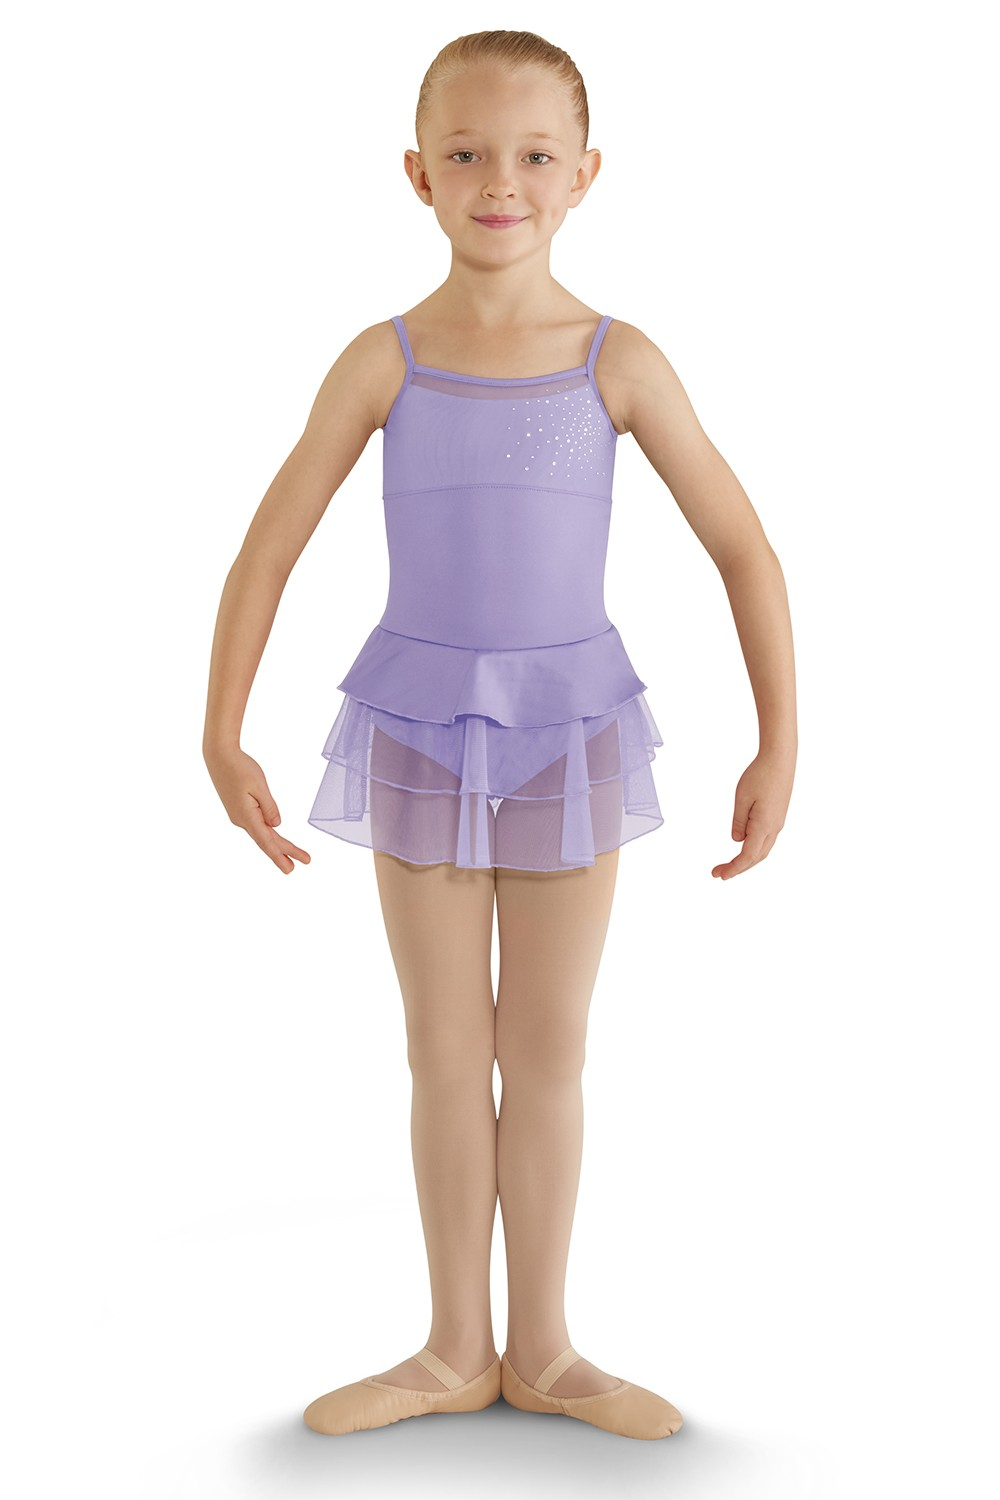 Iota Children's Dance Leotards